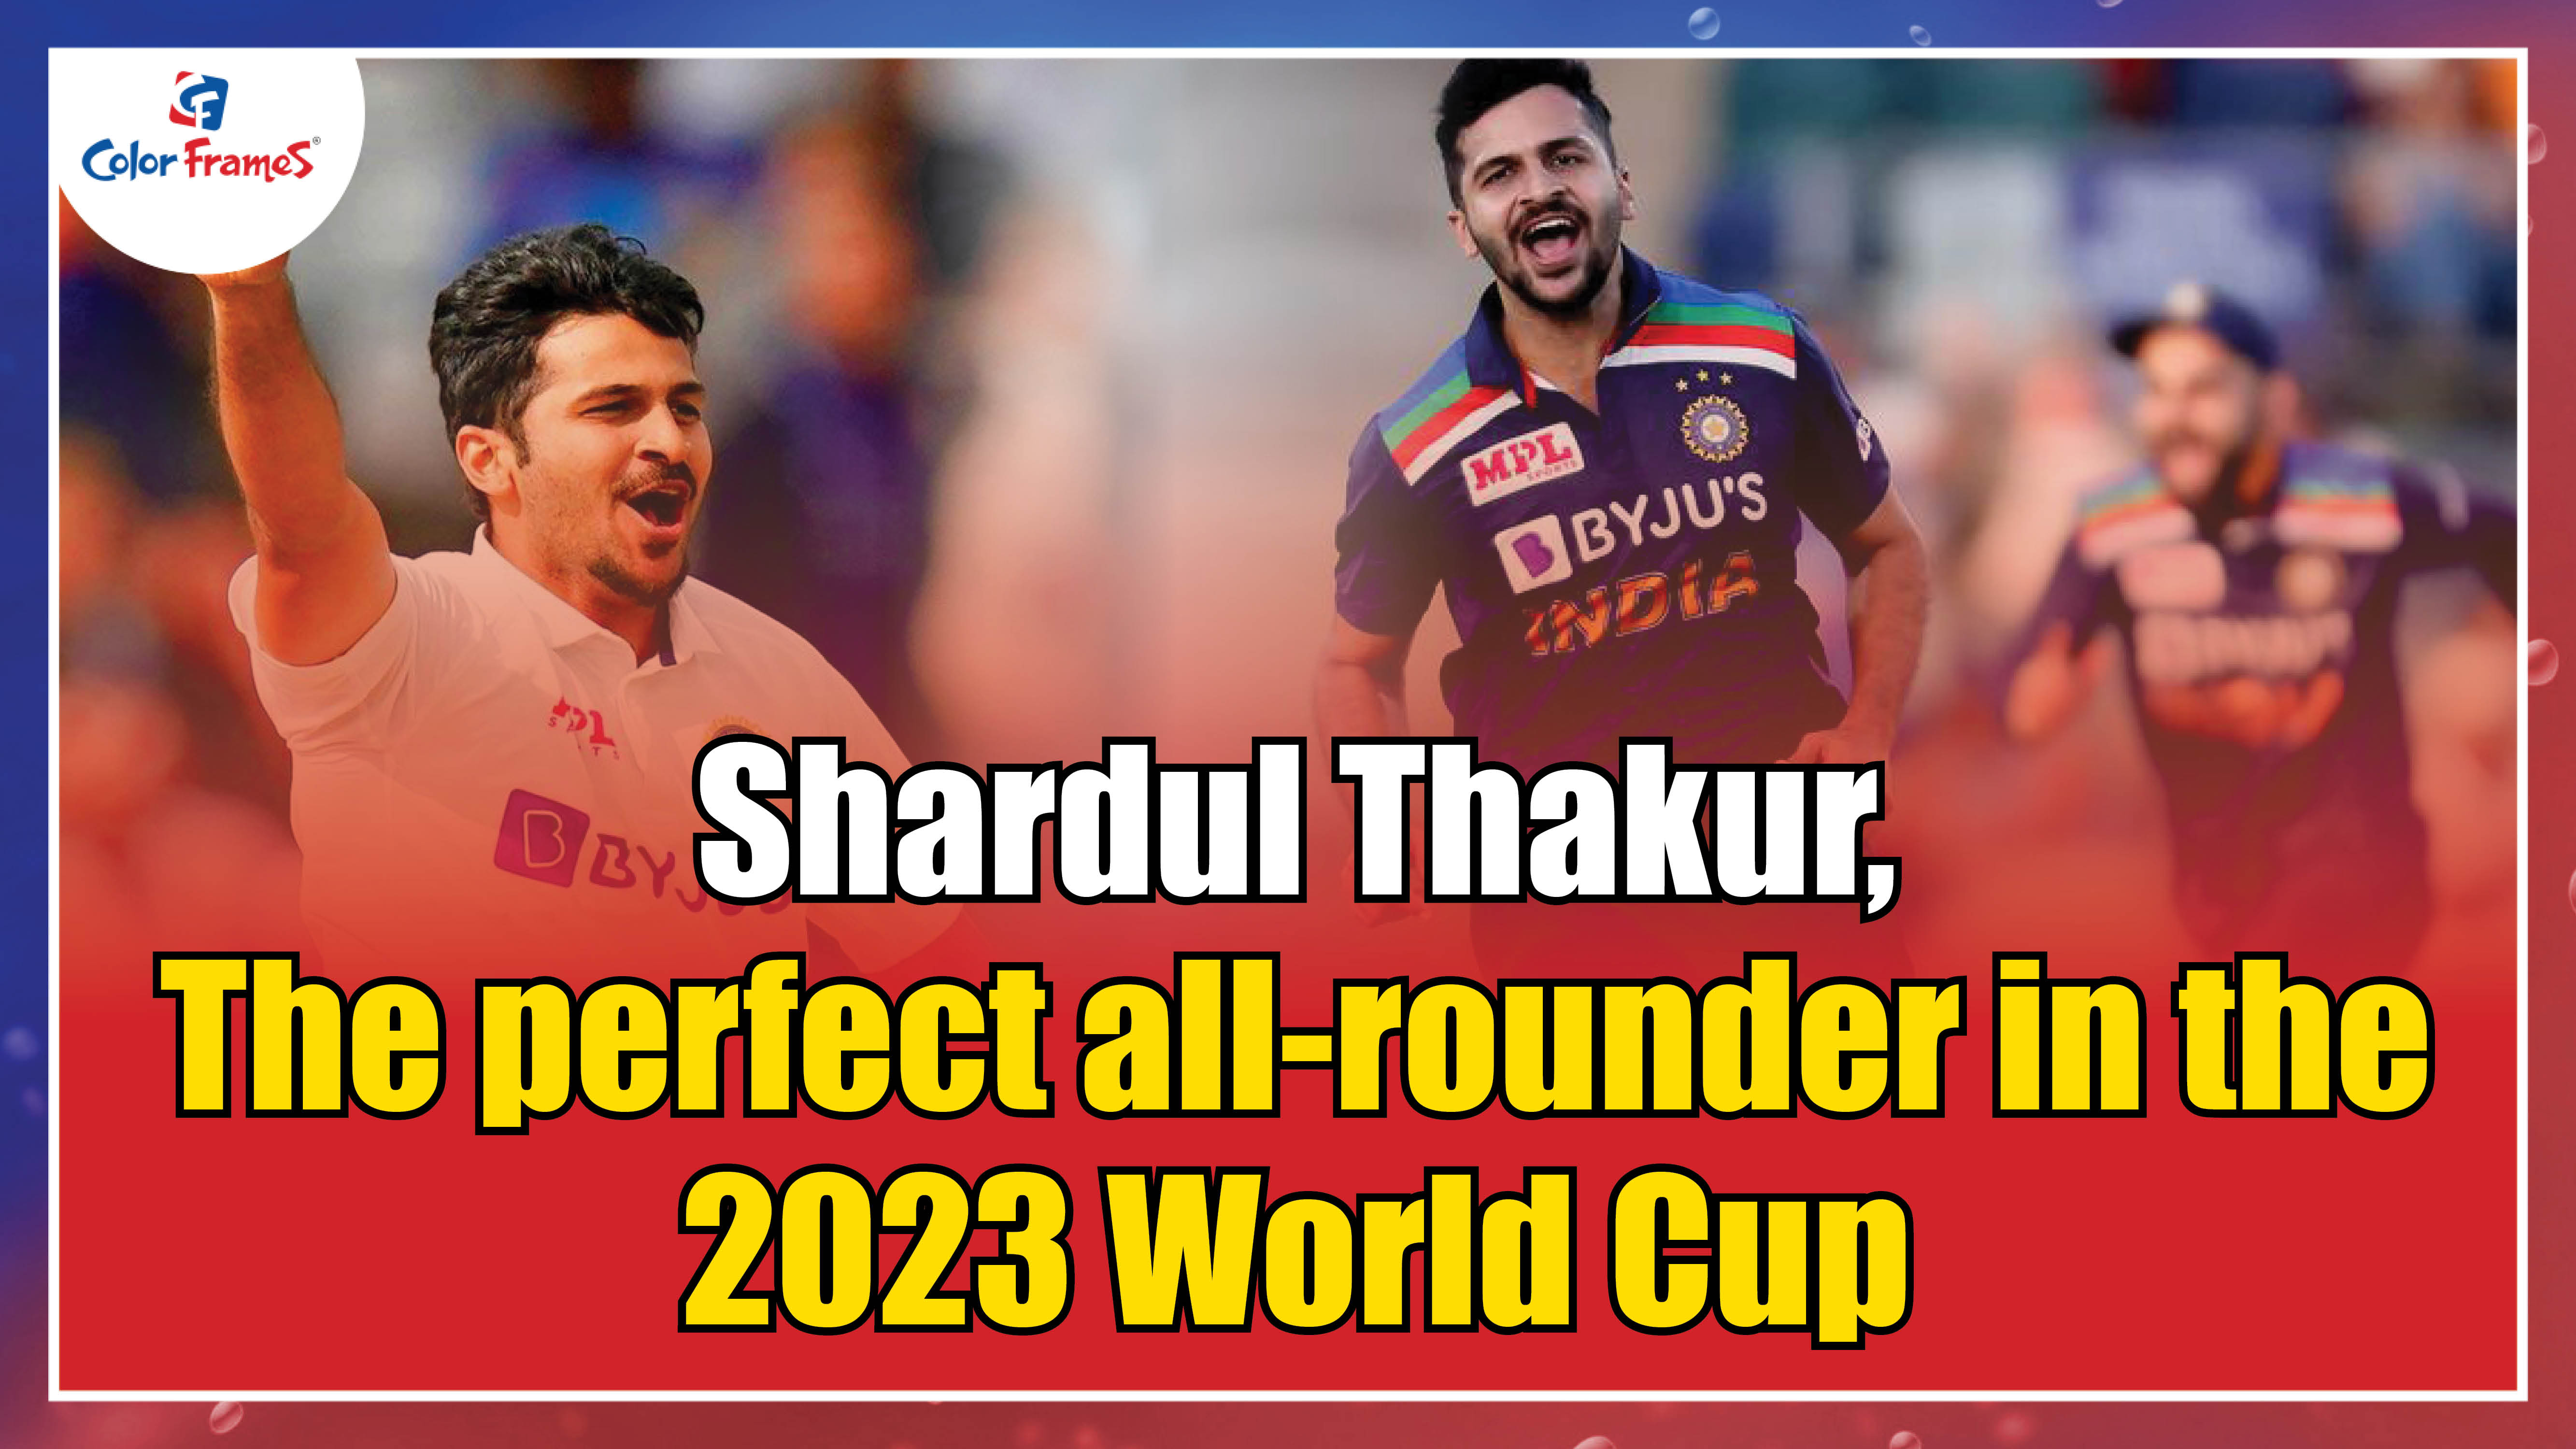 Shardul Thakur, The perfect all-rounder in the 2023 World Cup